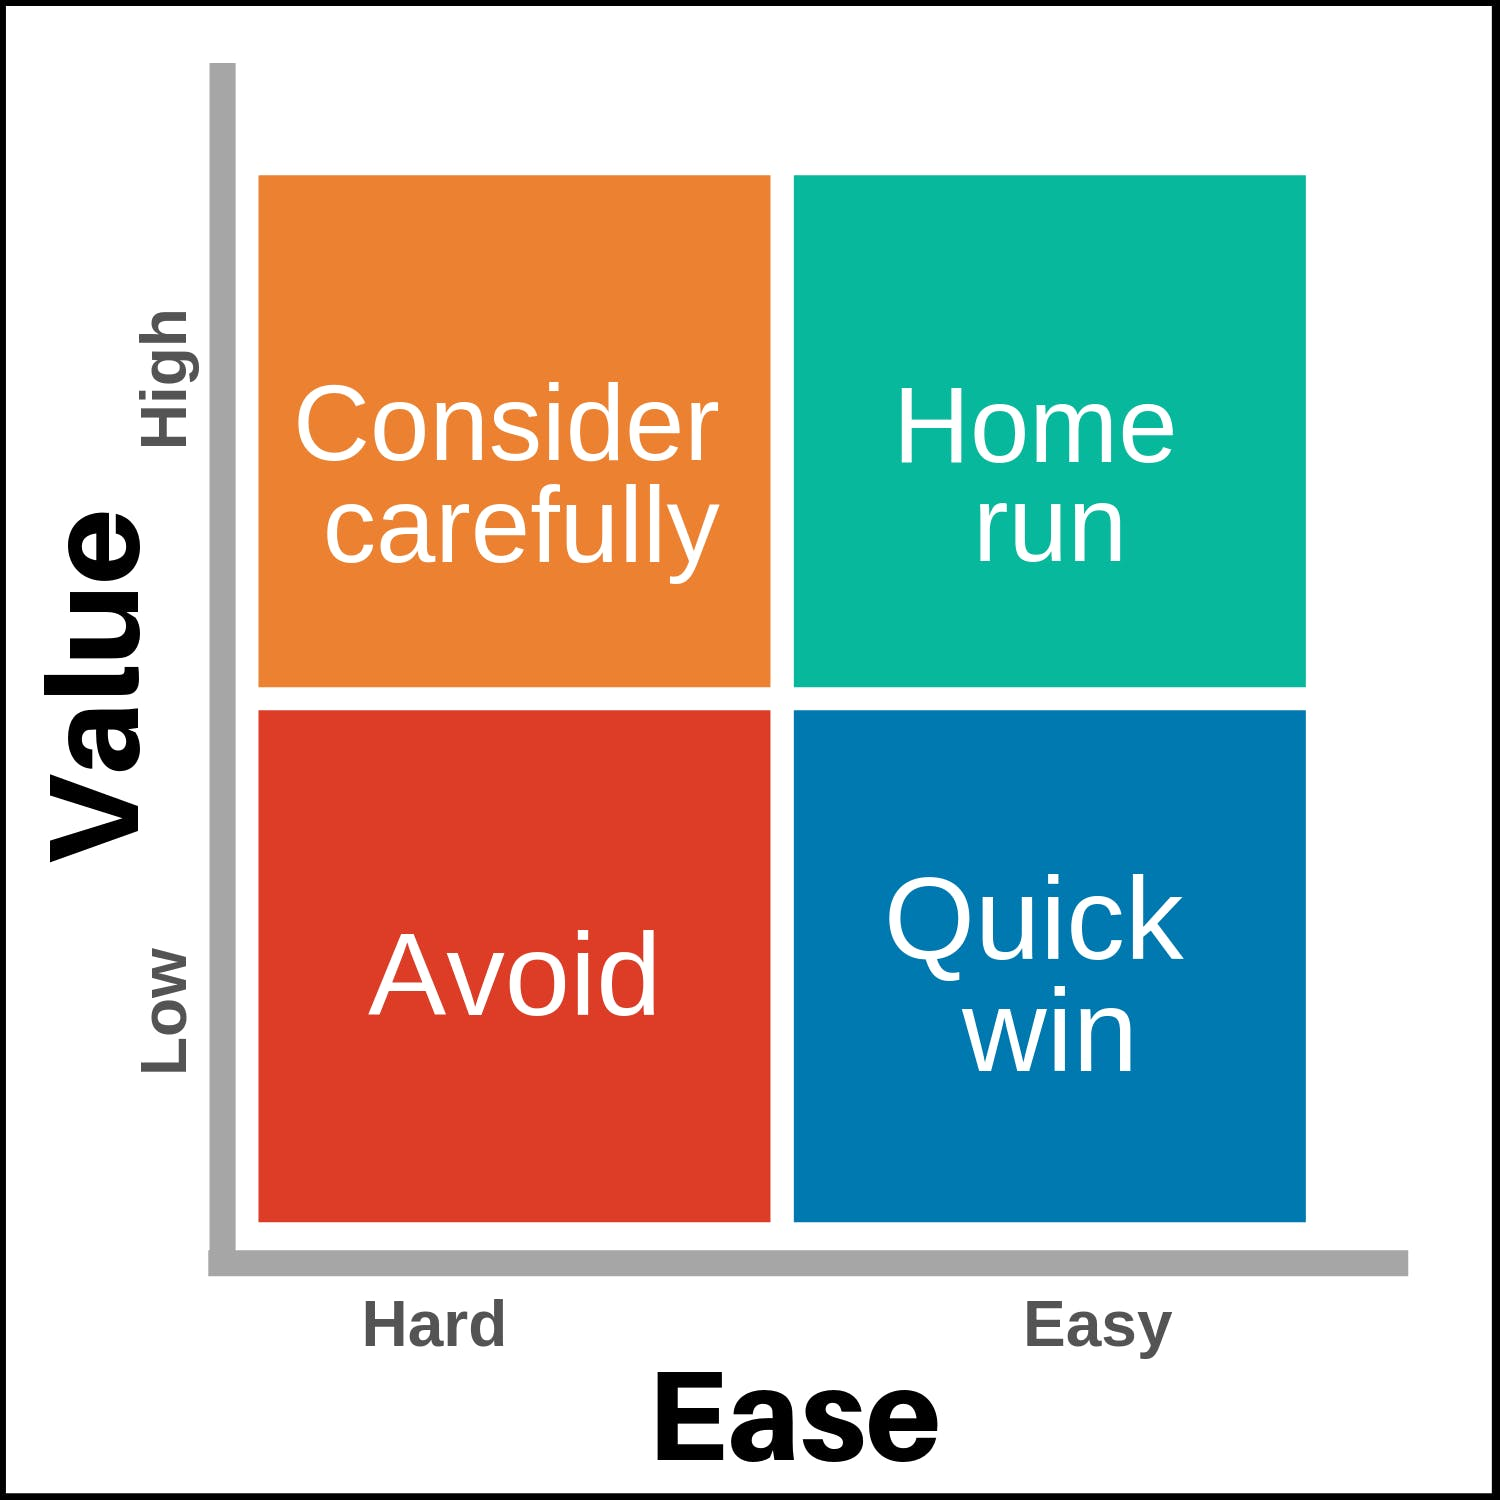 Value vs Ease grid